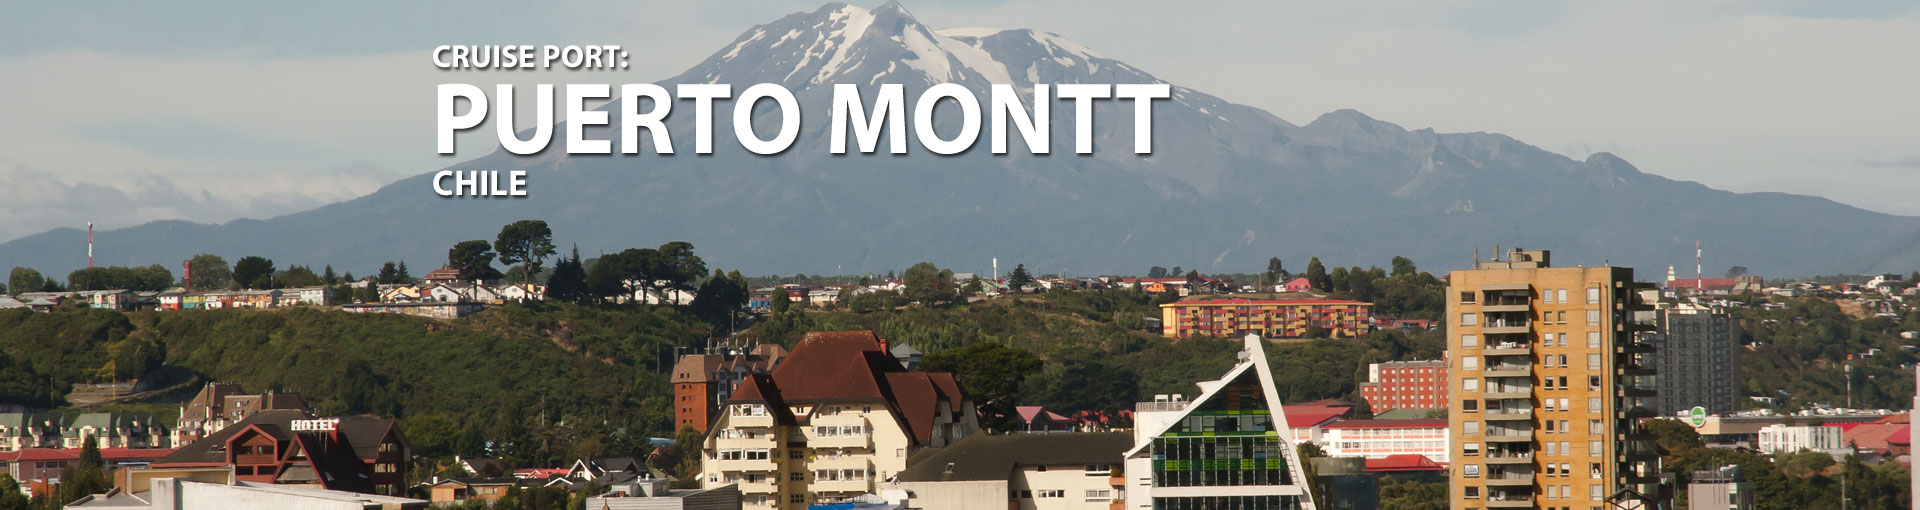 Cruises to Puerto Montt, Chile